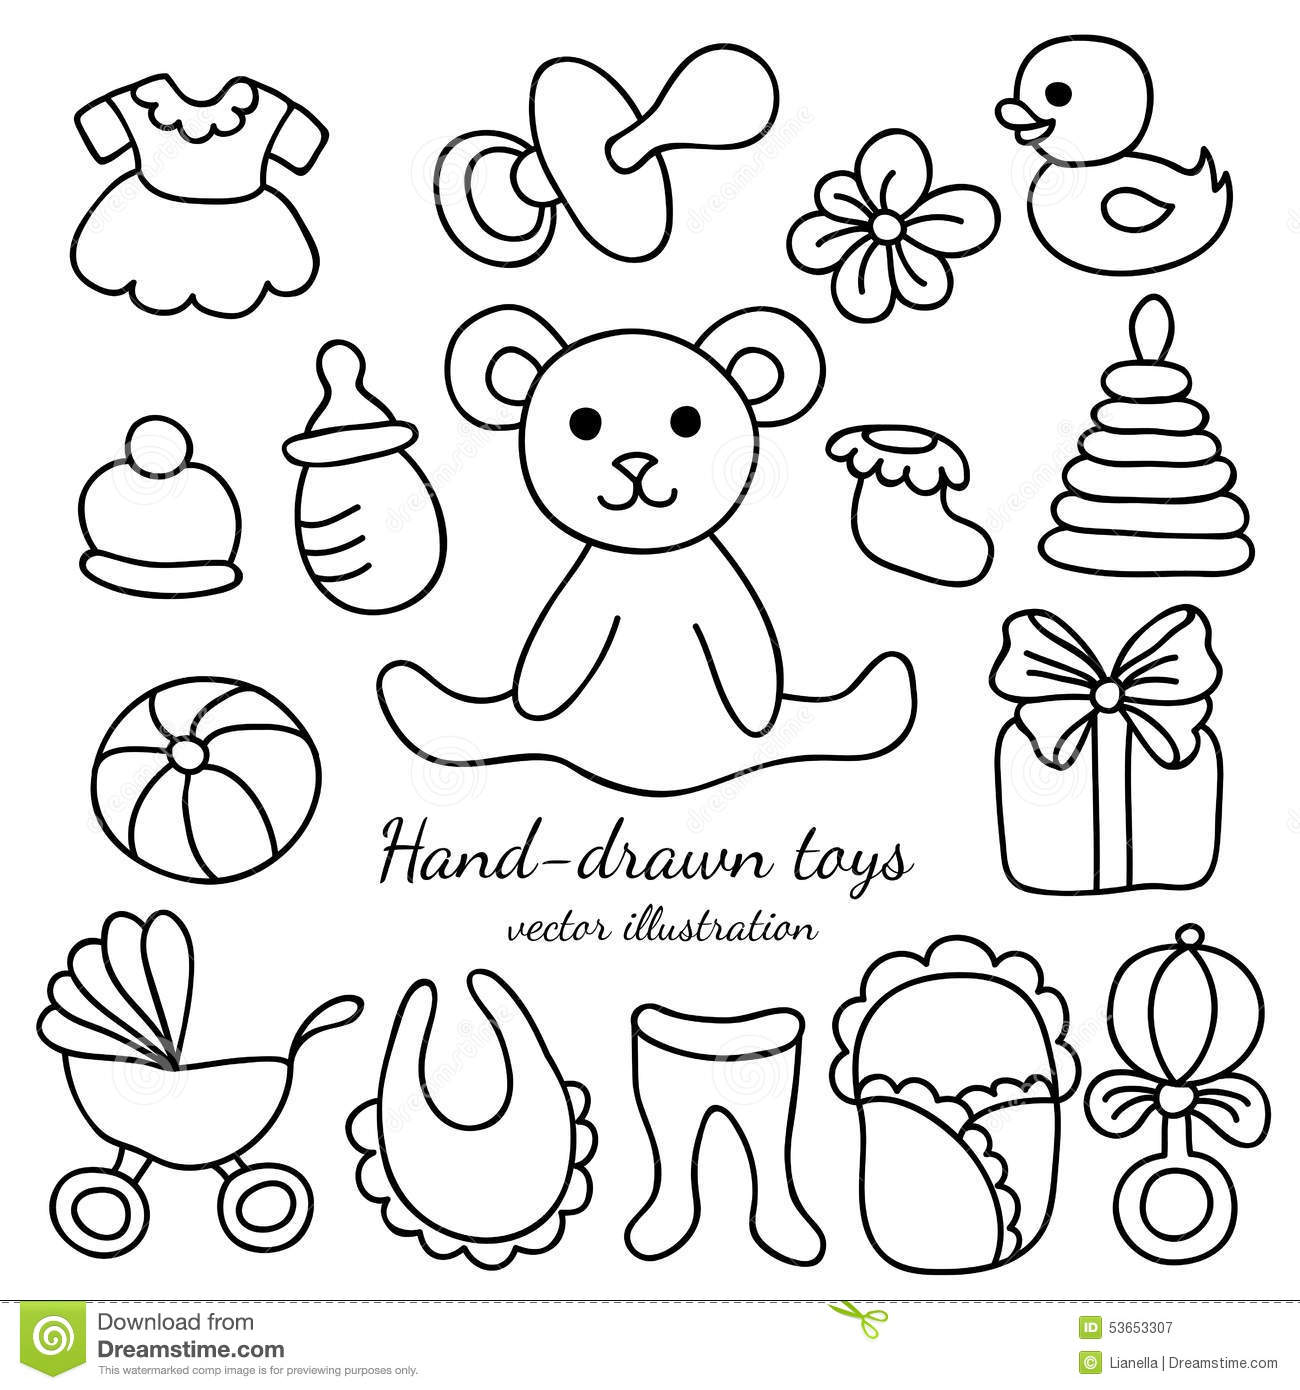 Baby Toys Drawing : Hand drawn baby goods and toys set stock vector image